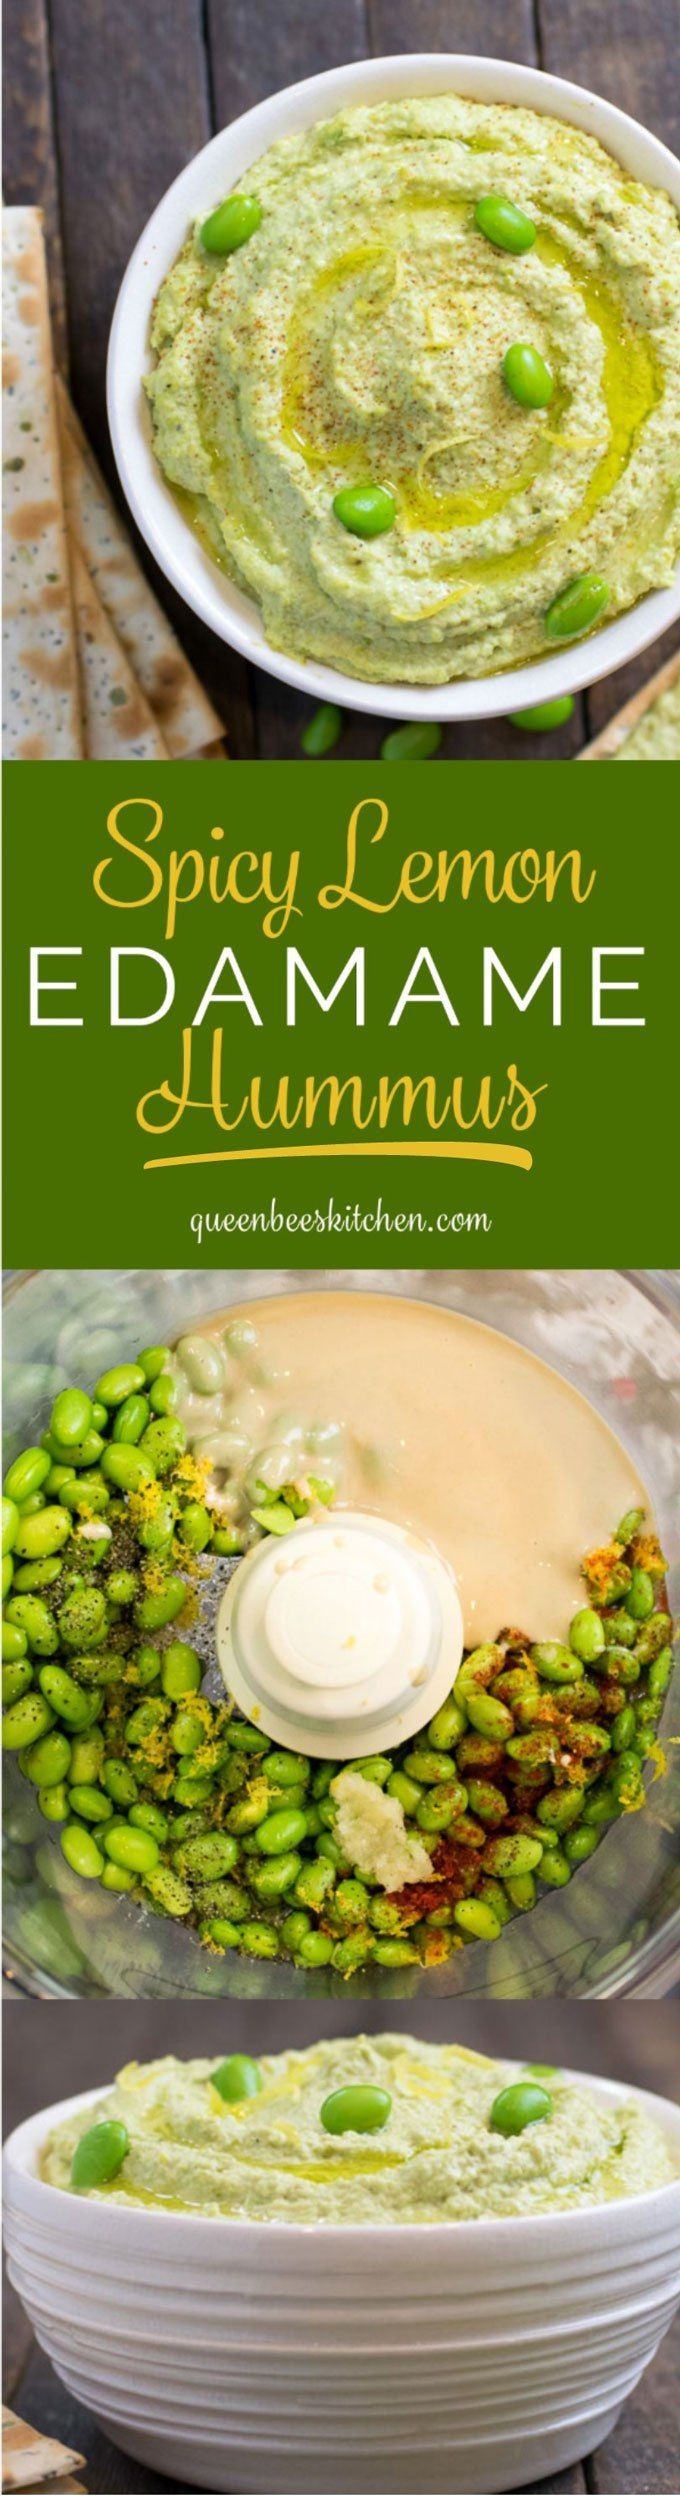 Spicy Lemon Edamame Hummus - Delicious and nutritious - You gotta make this! :)